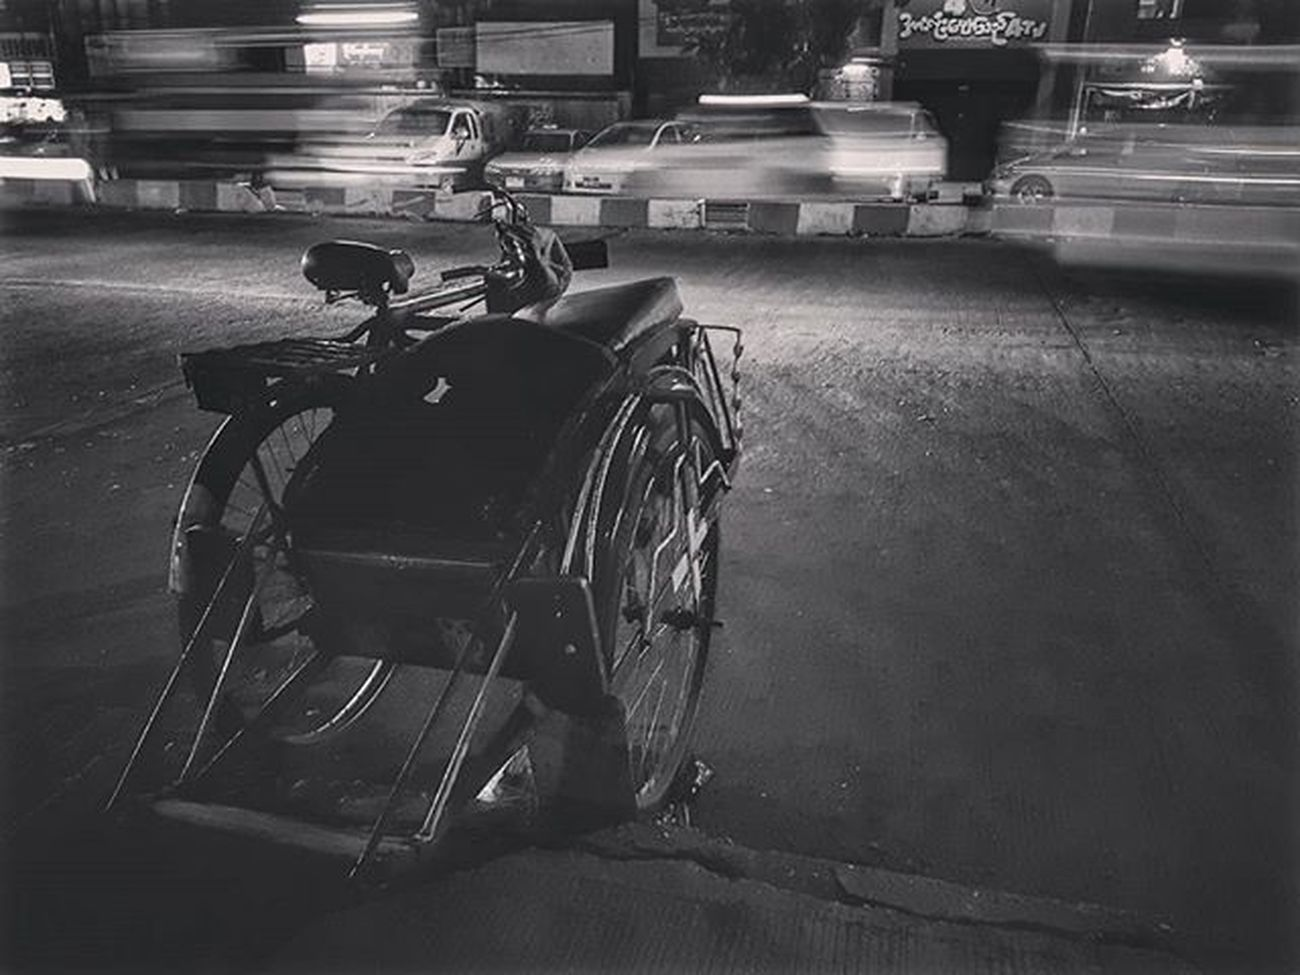 Trishaw on the road (Testing pro mode on Samsung s7 edge) Trishaw Burmesetrishaw Mobilephotography Mobilephoto Myanmar Burma Yangon Rangoon Igersmyanmar Instagood AOV Artofvisuals Samsungphoto Snapseed Yourworldgallery Travelgood Choose2create Vacationinstyle Tricycle Blackandwhite Blacknwhite Bnw